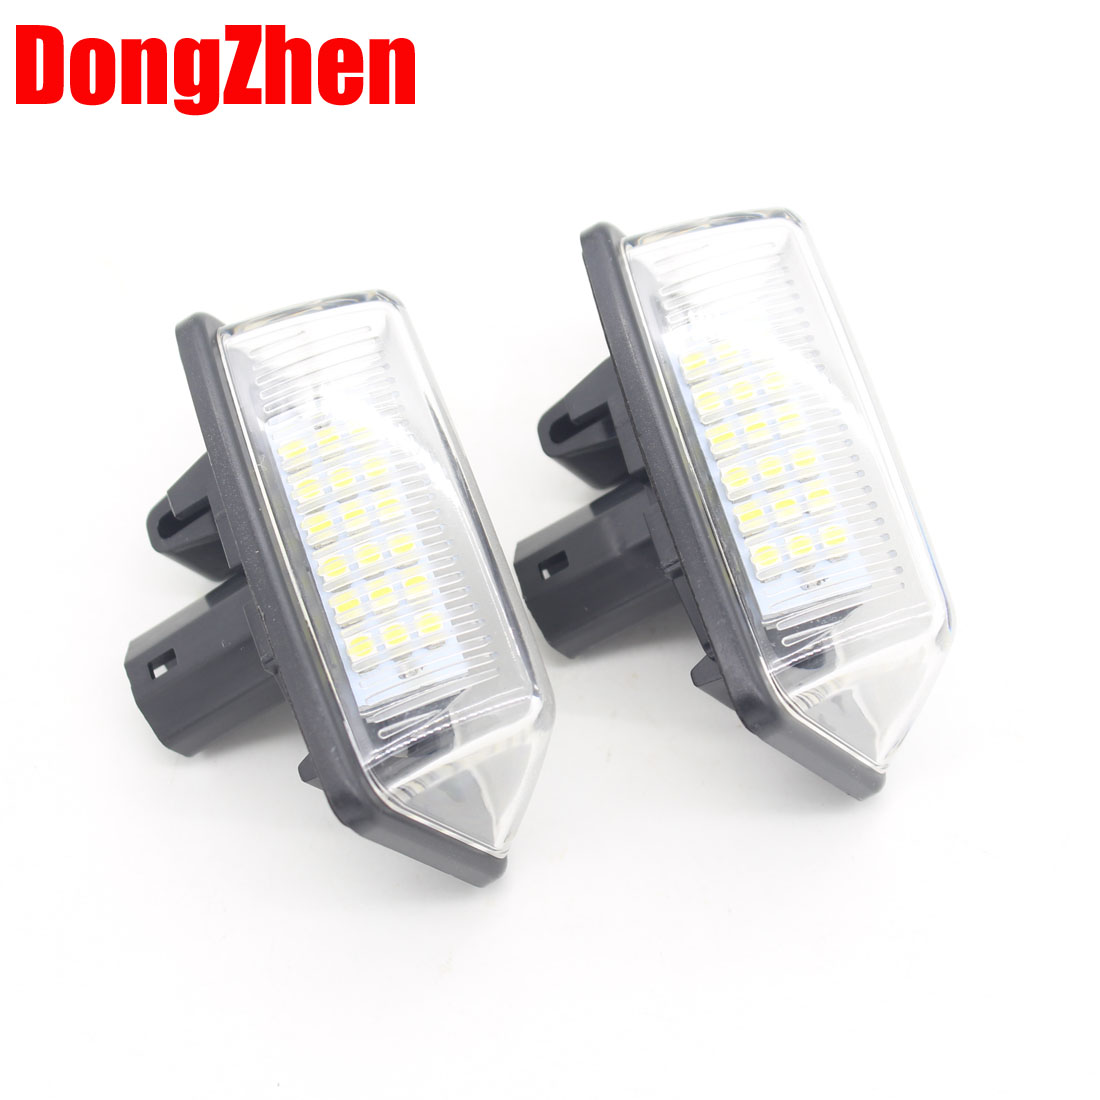 DongZhen Car Error Free 18LED 3528 SMD License Plate Light Lamp Fit For Toyota Crown Bright White Free Shipping 2pcs new arrival 2pcs 18 smd 3528 led license plate light lamp bulb white for bmw e46 2 door 1998 2003 12 30v free shipping